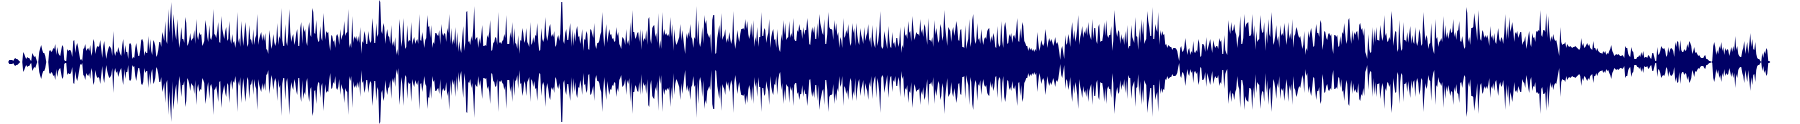 waveform of track #77862